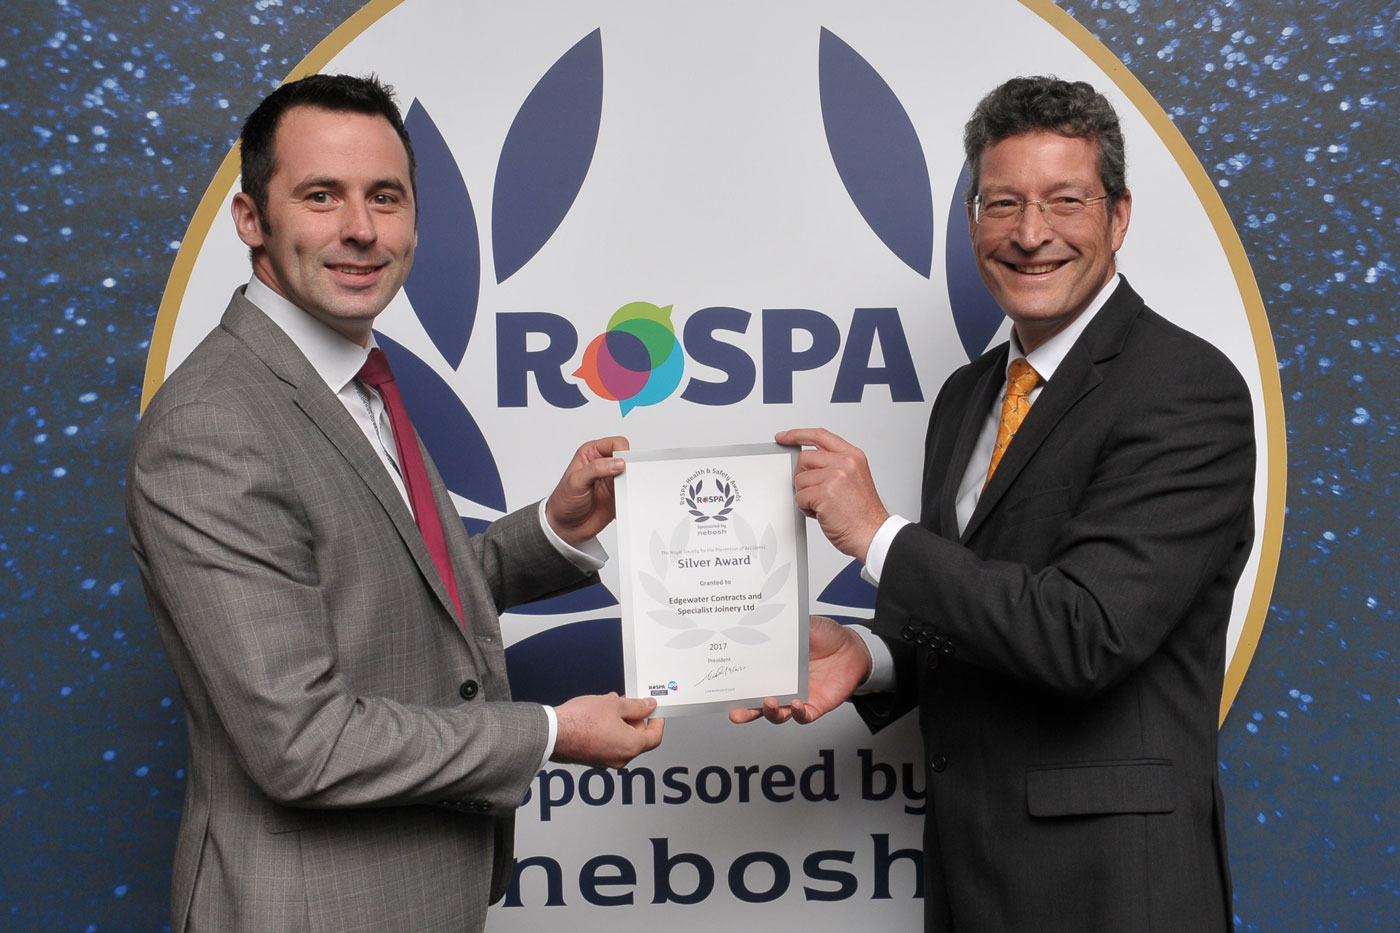 Edgewater Contacts Achieve ROSPA Silver Award Status